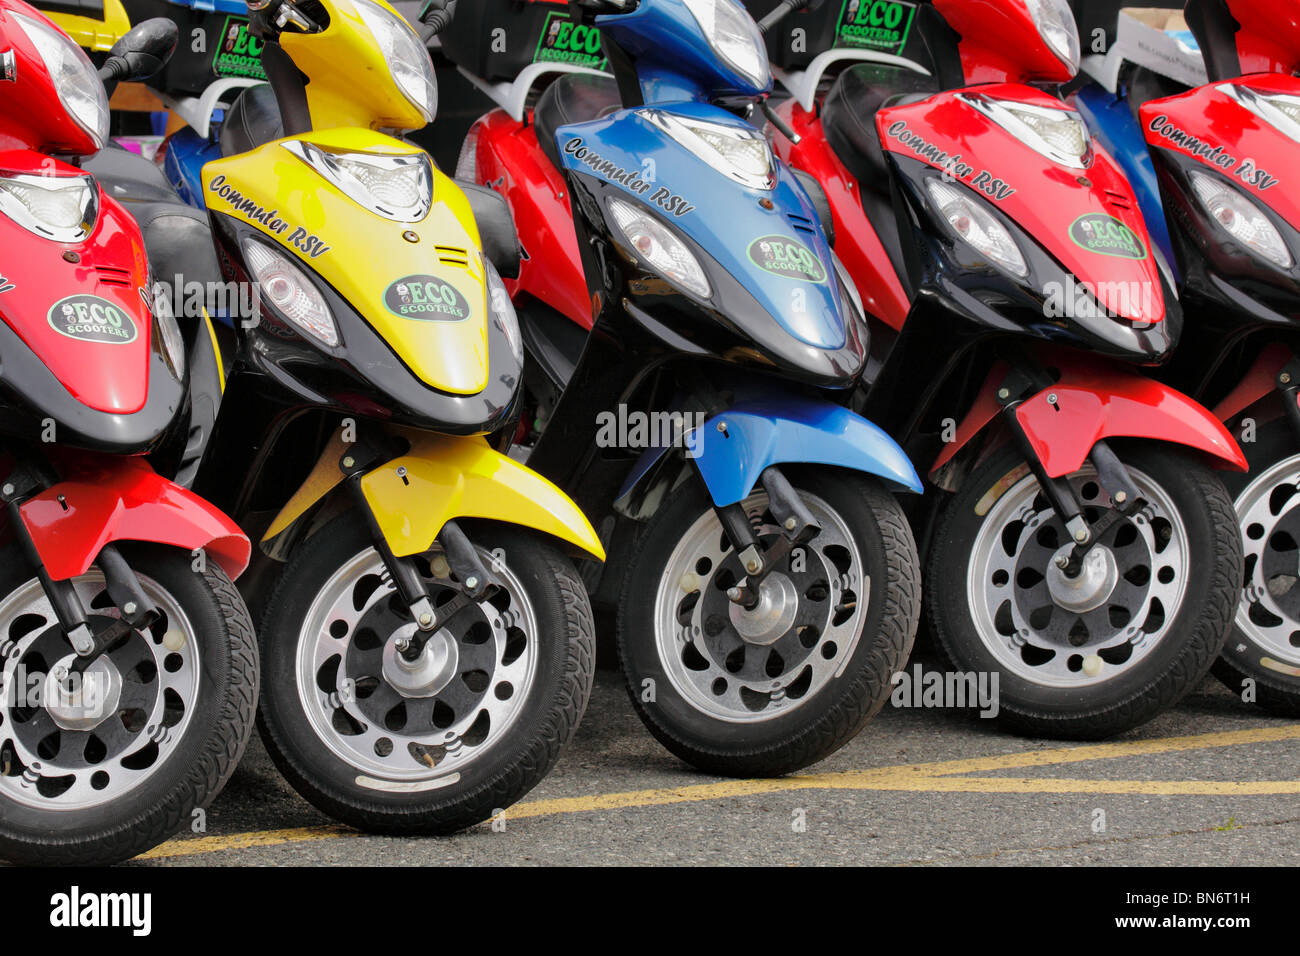 Rental Scooters lined up ready for usage-Victoria, British Columbia, Canada. - Stock Image